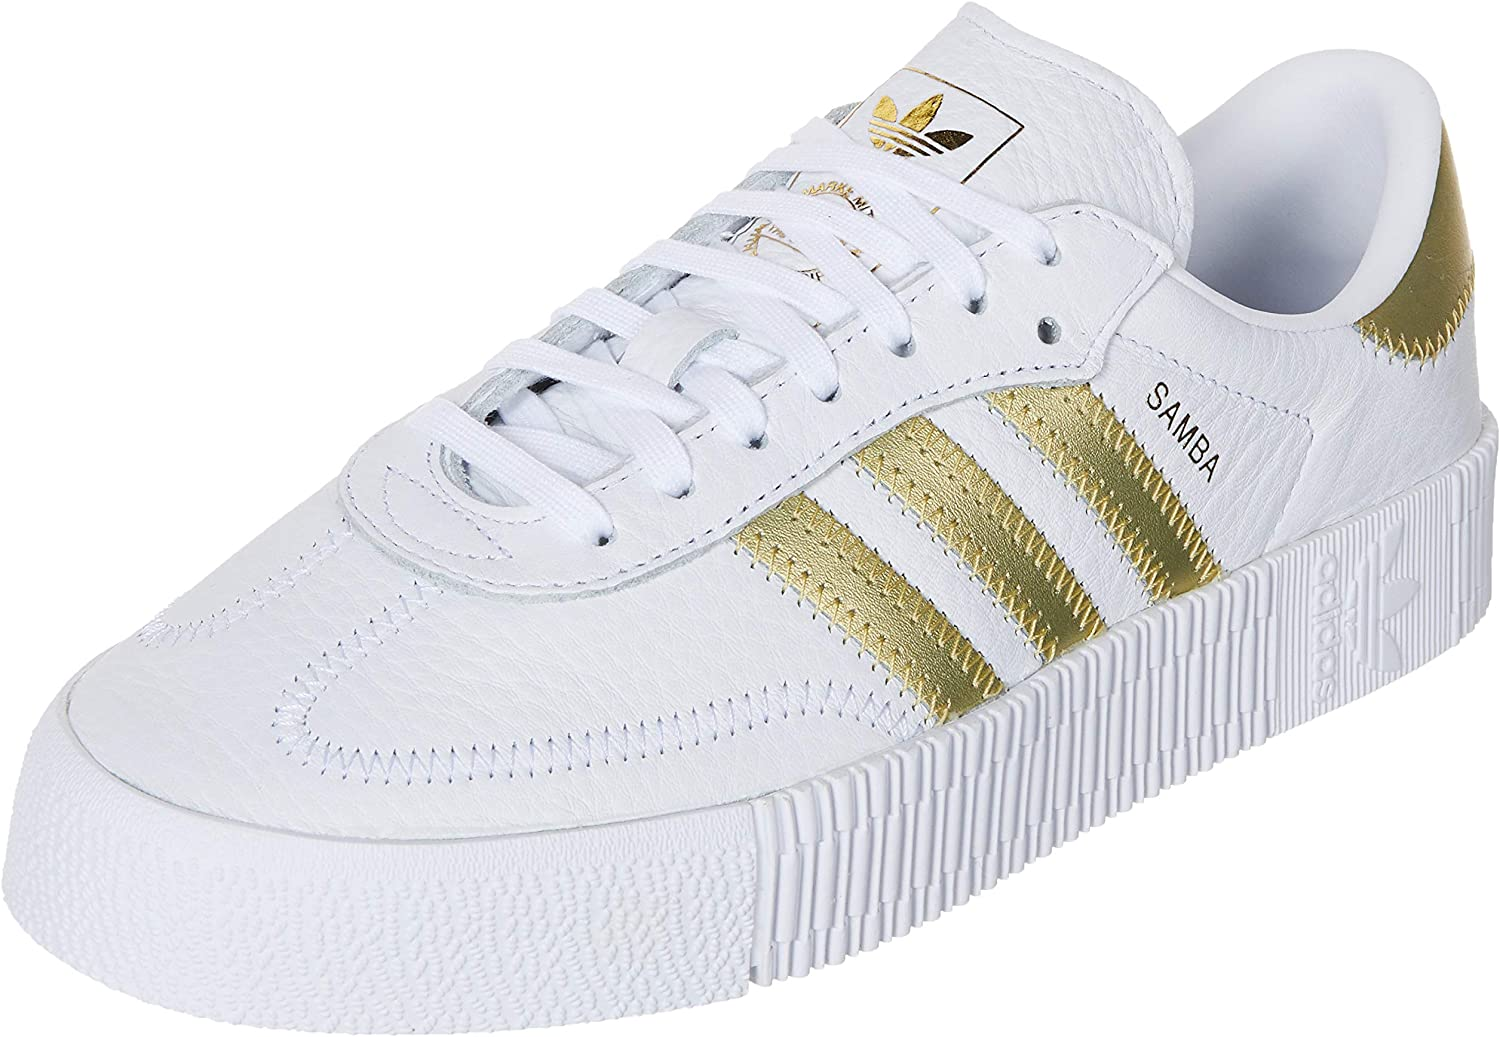 Adidas Sambarose W White Gold White 37: Amazon.it: Scarpe e